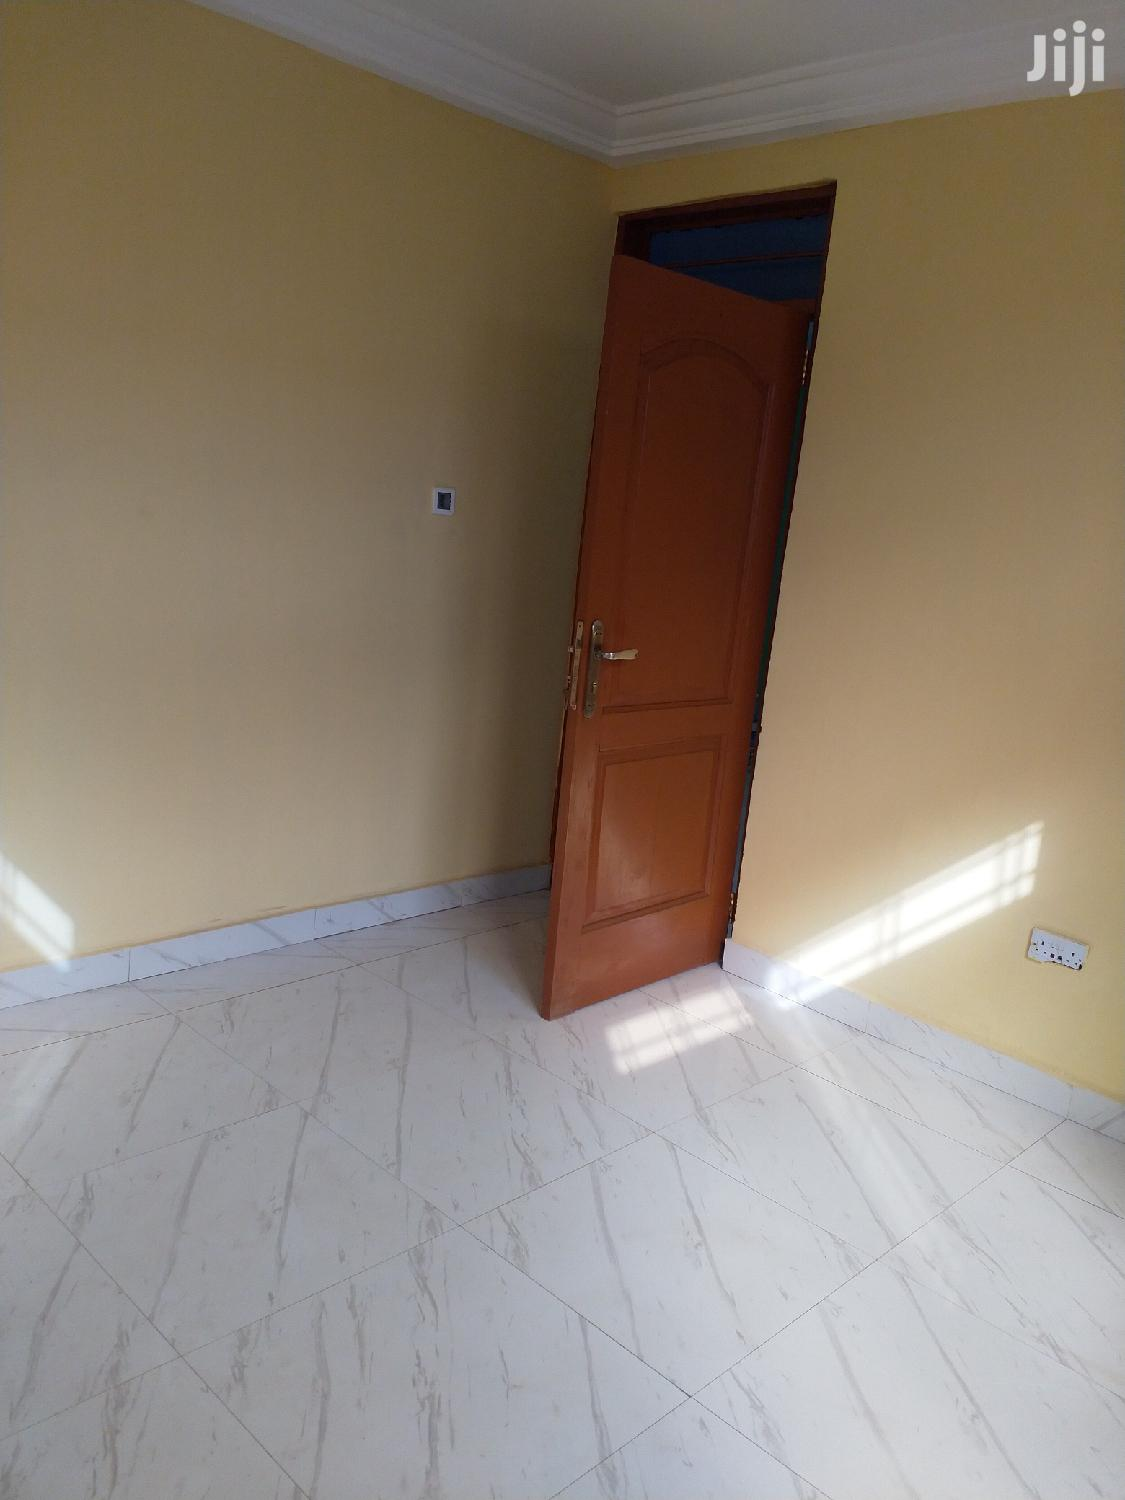 2bedroom Flat 4rent at Community 25 | Houses & Apartments For Rent for sale in Tema Metropolitan, Greater Accra, Ghana